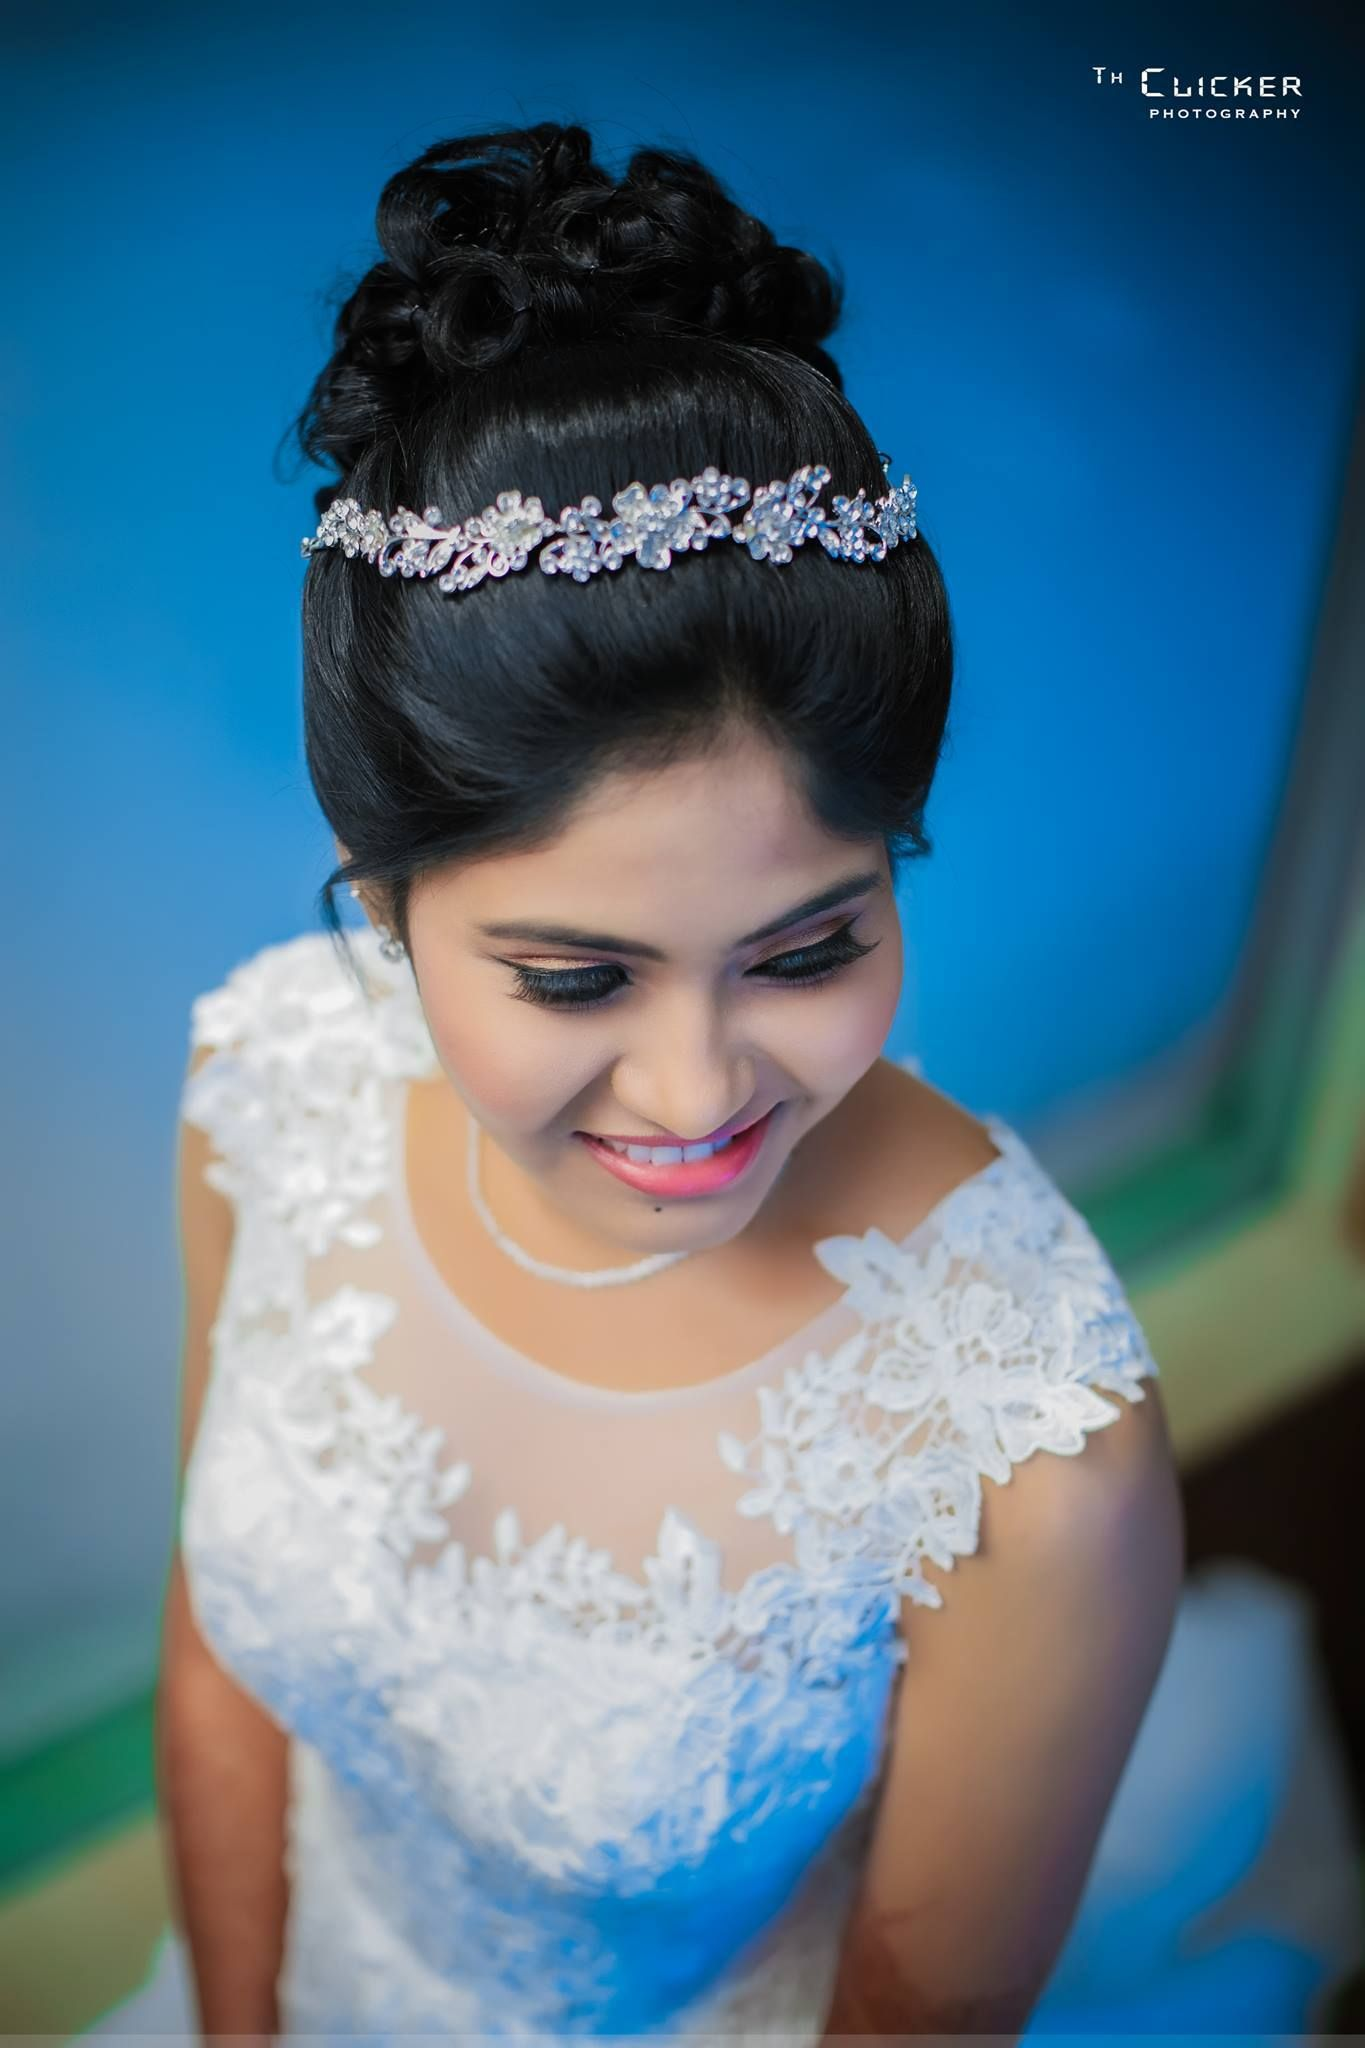 Pin by Minz on kerala Christian wedding and function | Christian wedding dress, Bridal hairdo ...